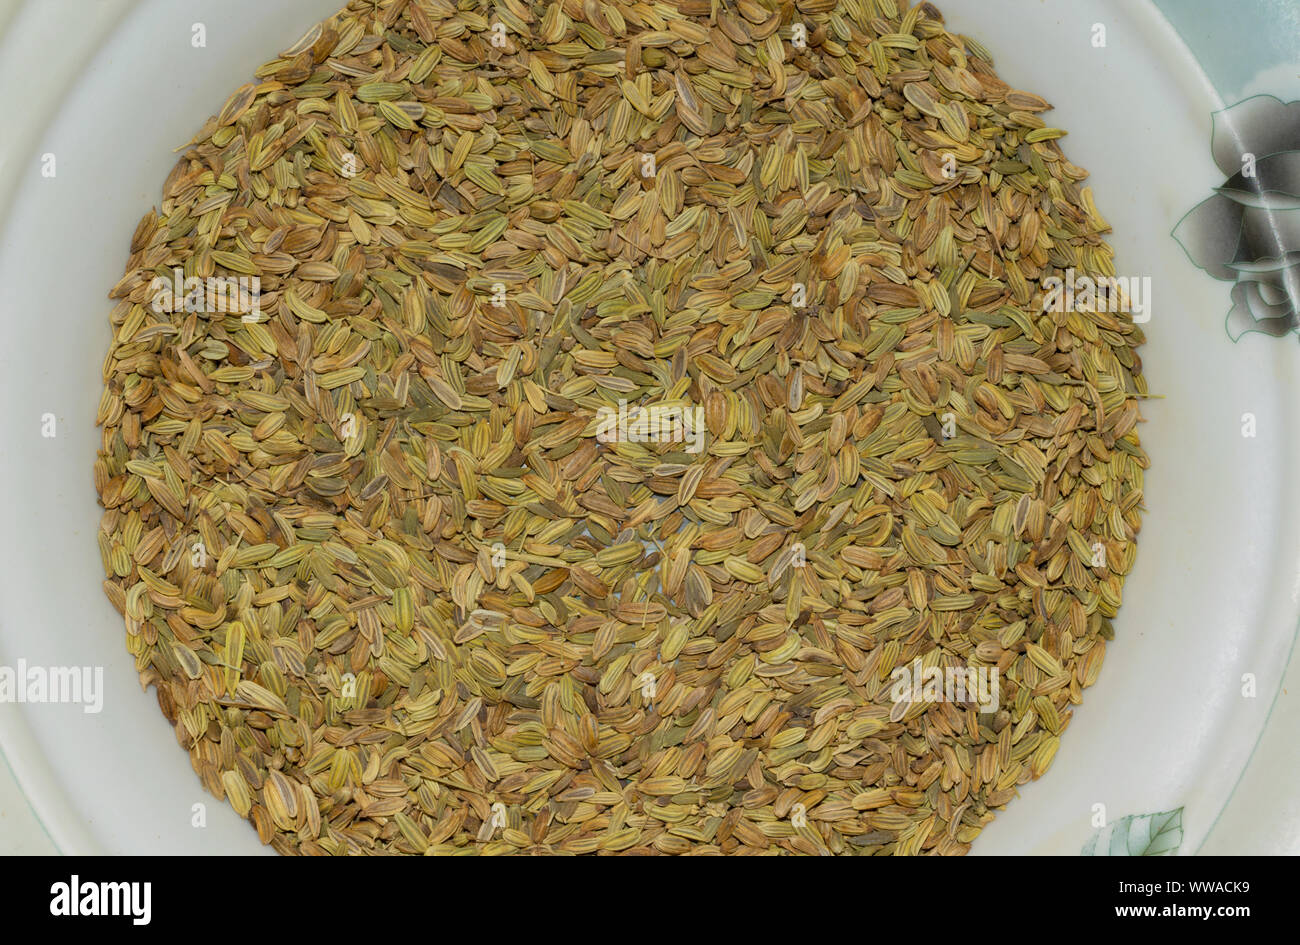 close up of dried fennel seeds in a white plate,top view.pile of dry fennel seeds in a plate. Stock Photo